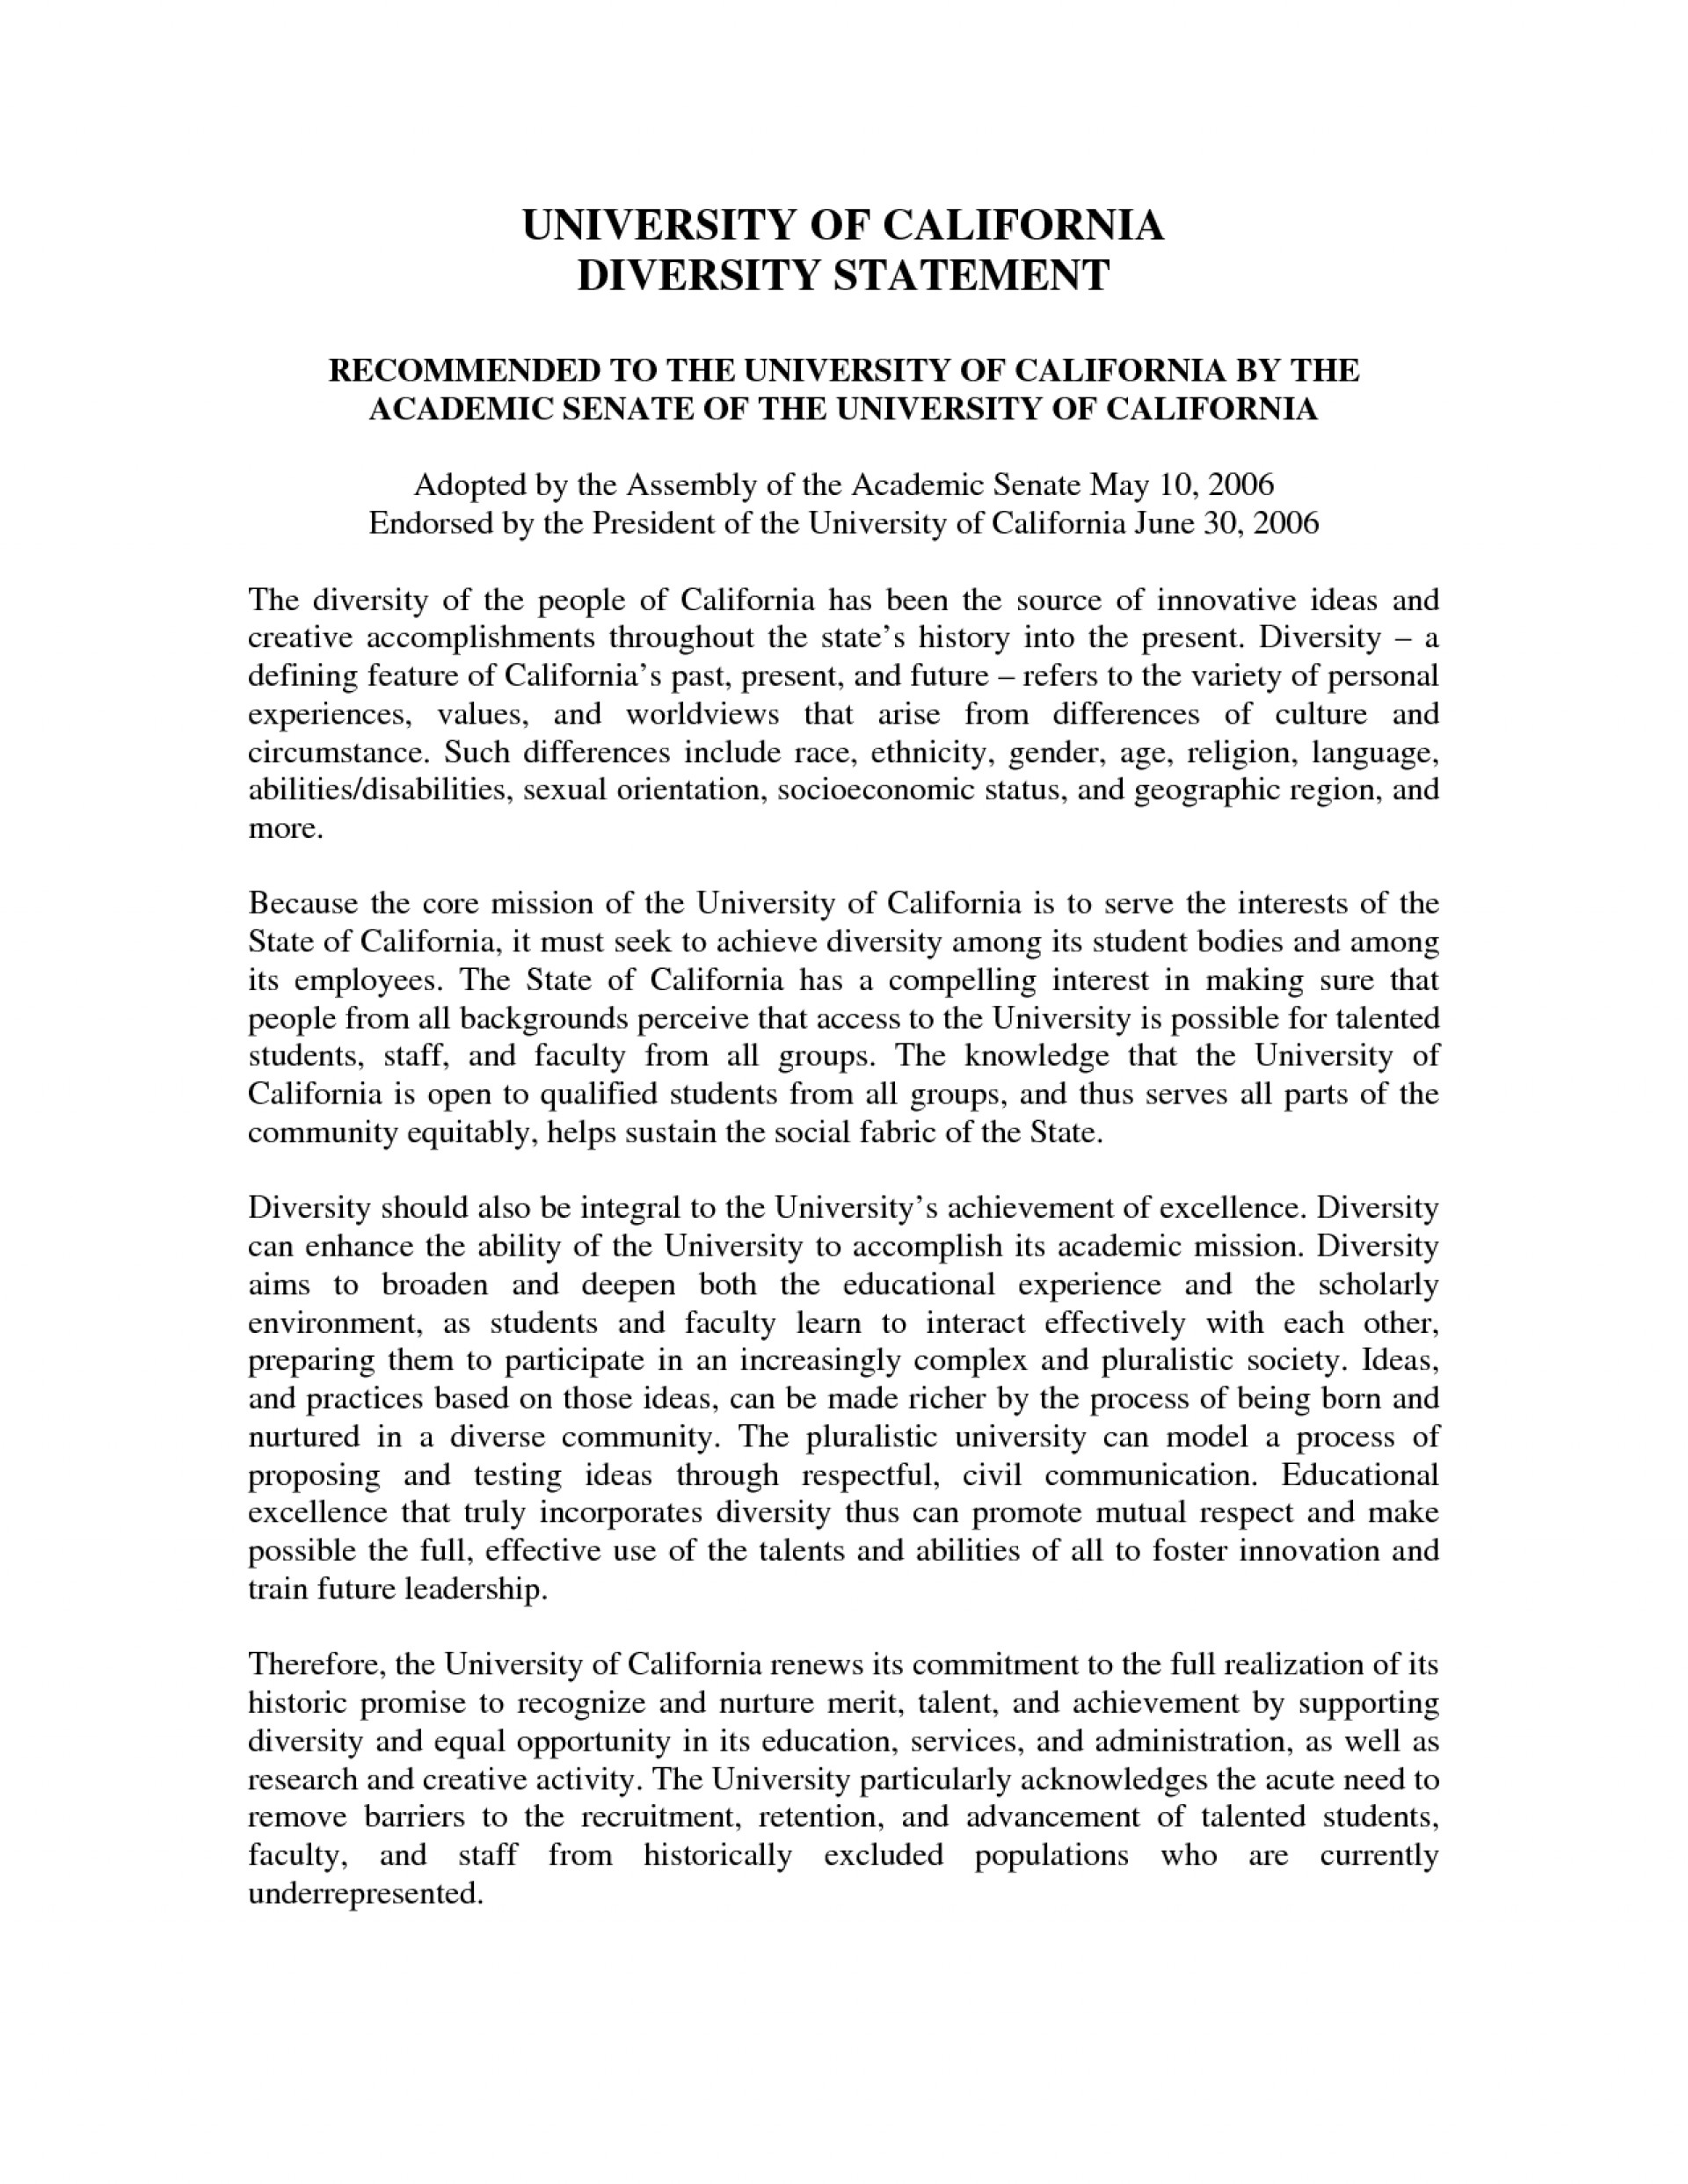 003 Essay Example What Is Diversity Essays On In Colleges How Will You Contribute To Sample Statement Template Remarkable Law School Uw Examples Medical 1920